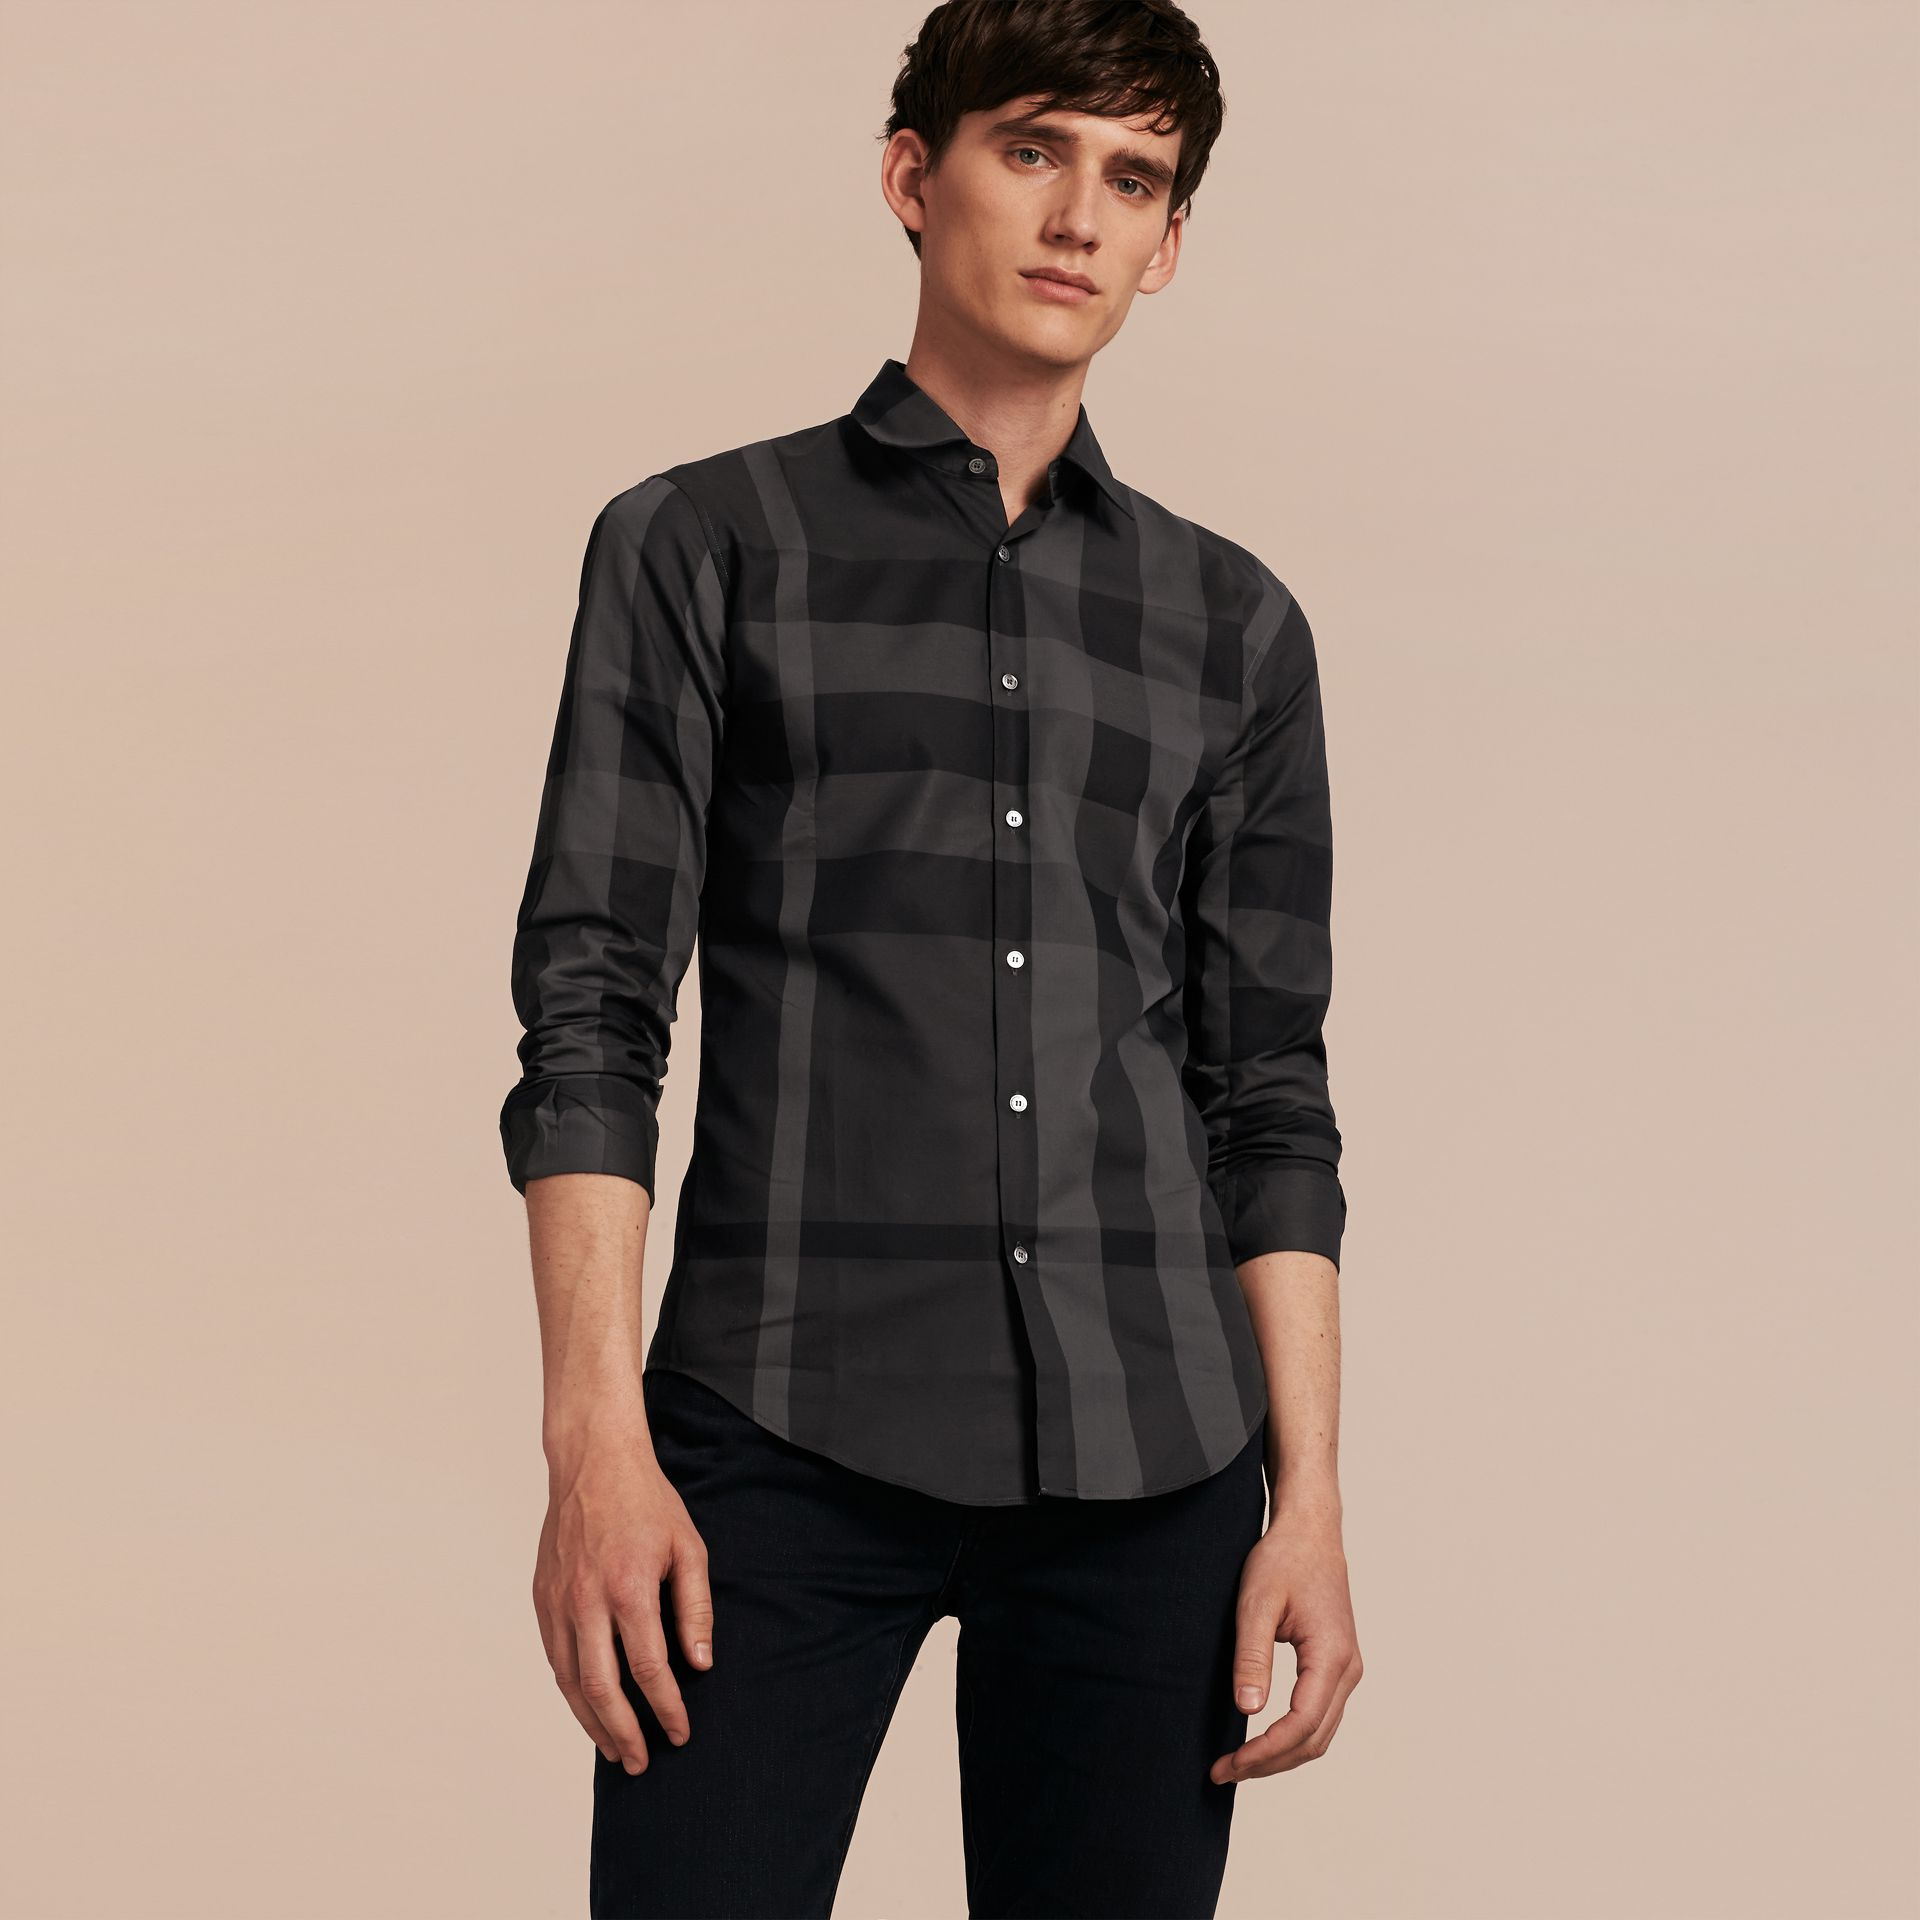 Charcoal Check Cotton Shirt Charcoal - gallery image 6